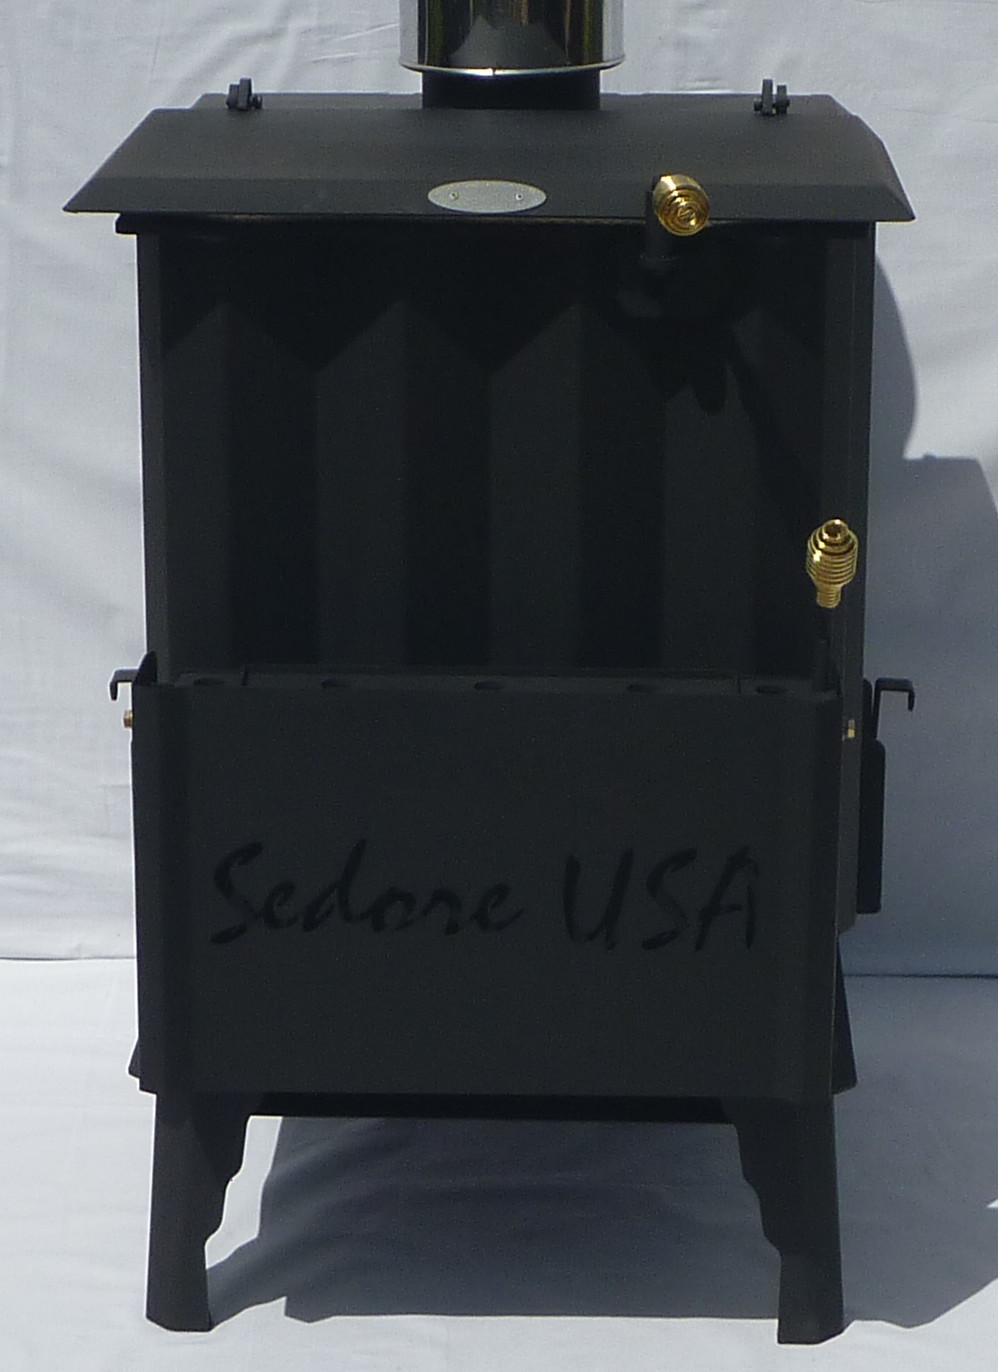 Auto Touch Up Paint >> Sedore Model 3000 Biomass Stove – Sedore USA